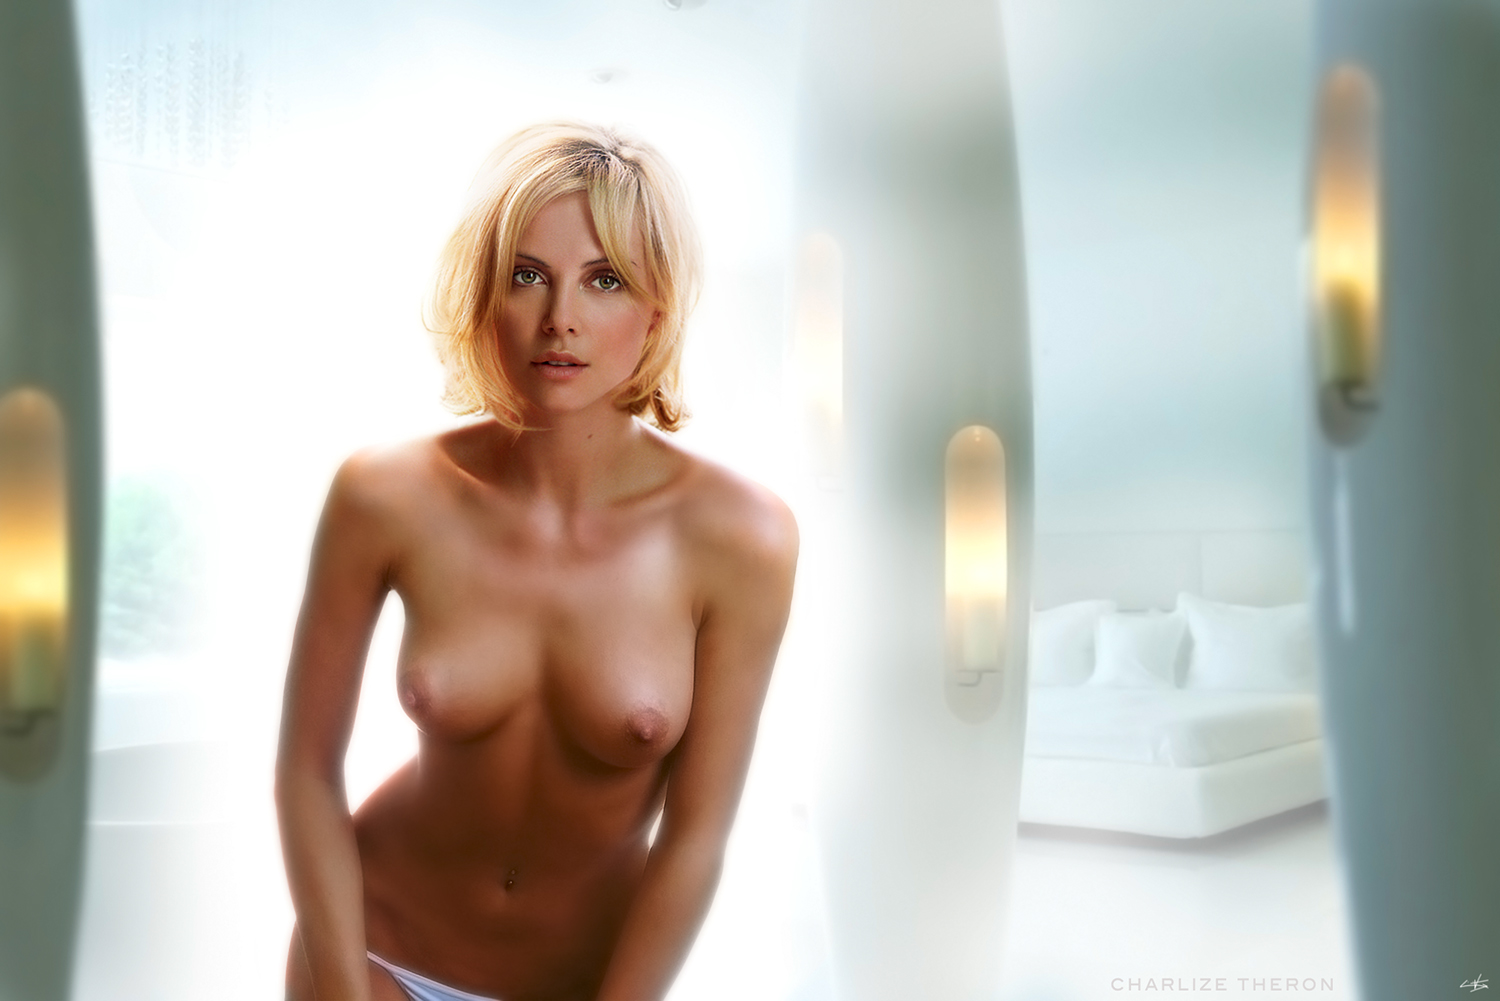 Charlize theron hot nude photos